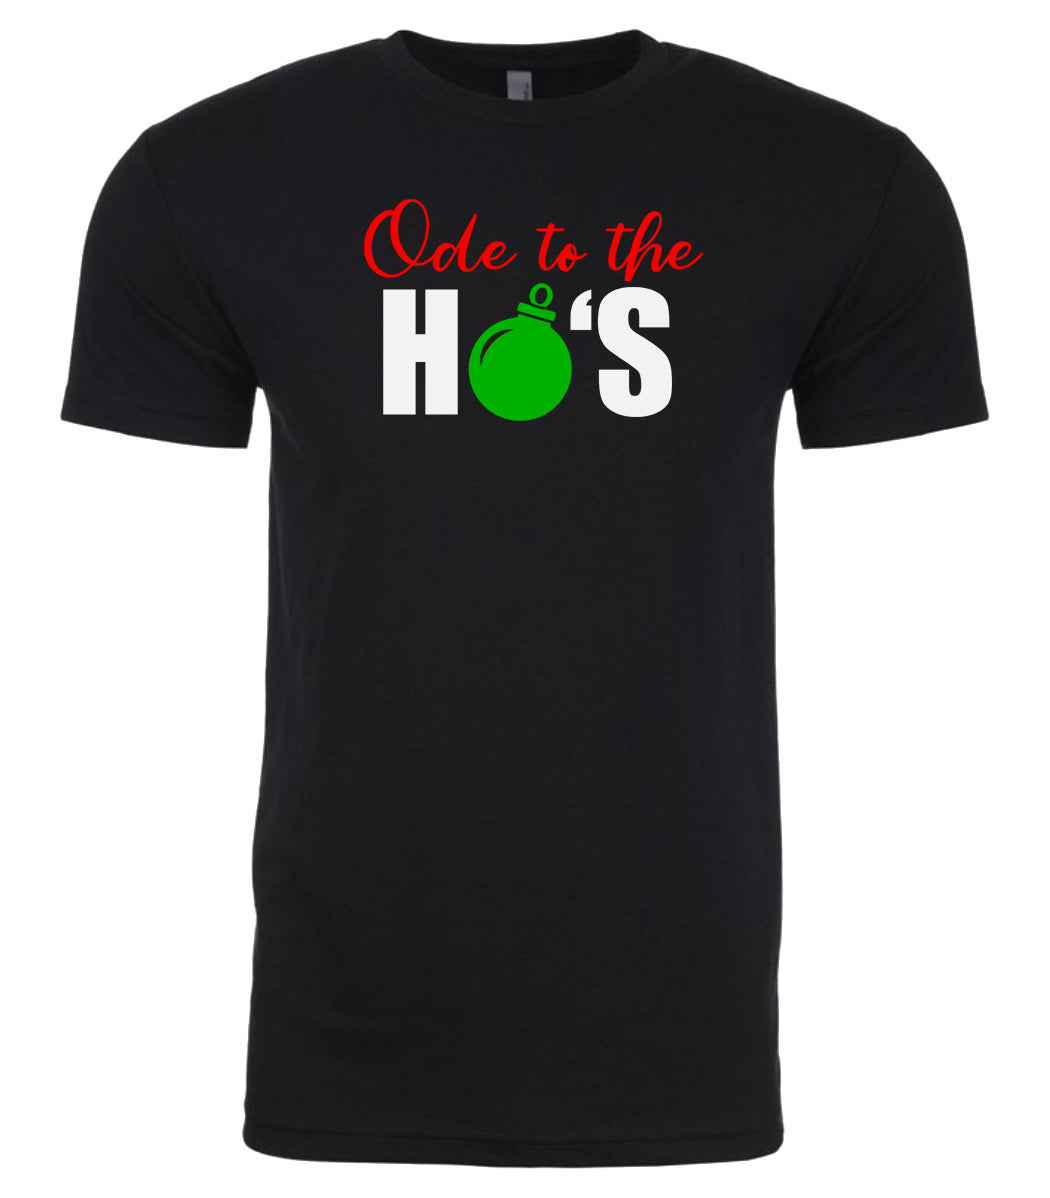 black ode to ho's t shirt for men